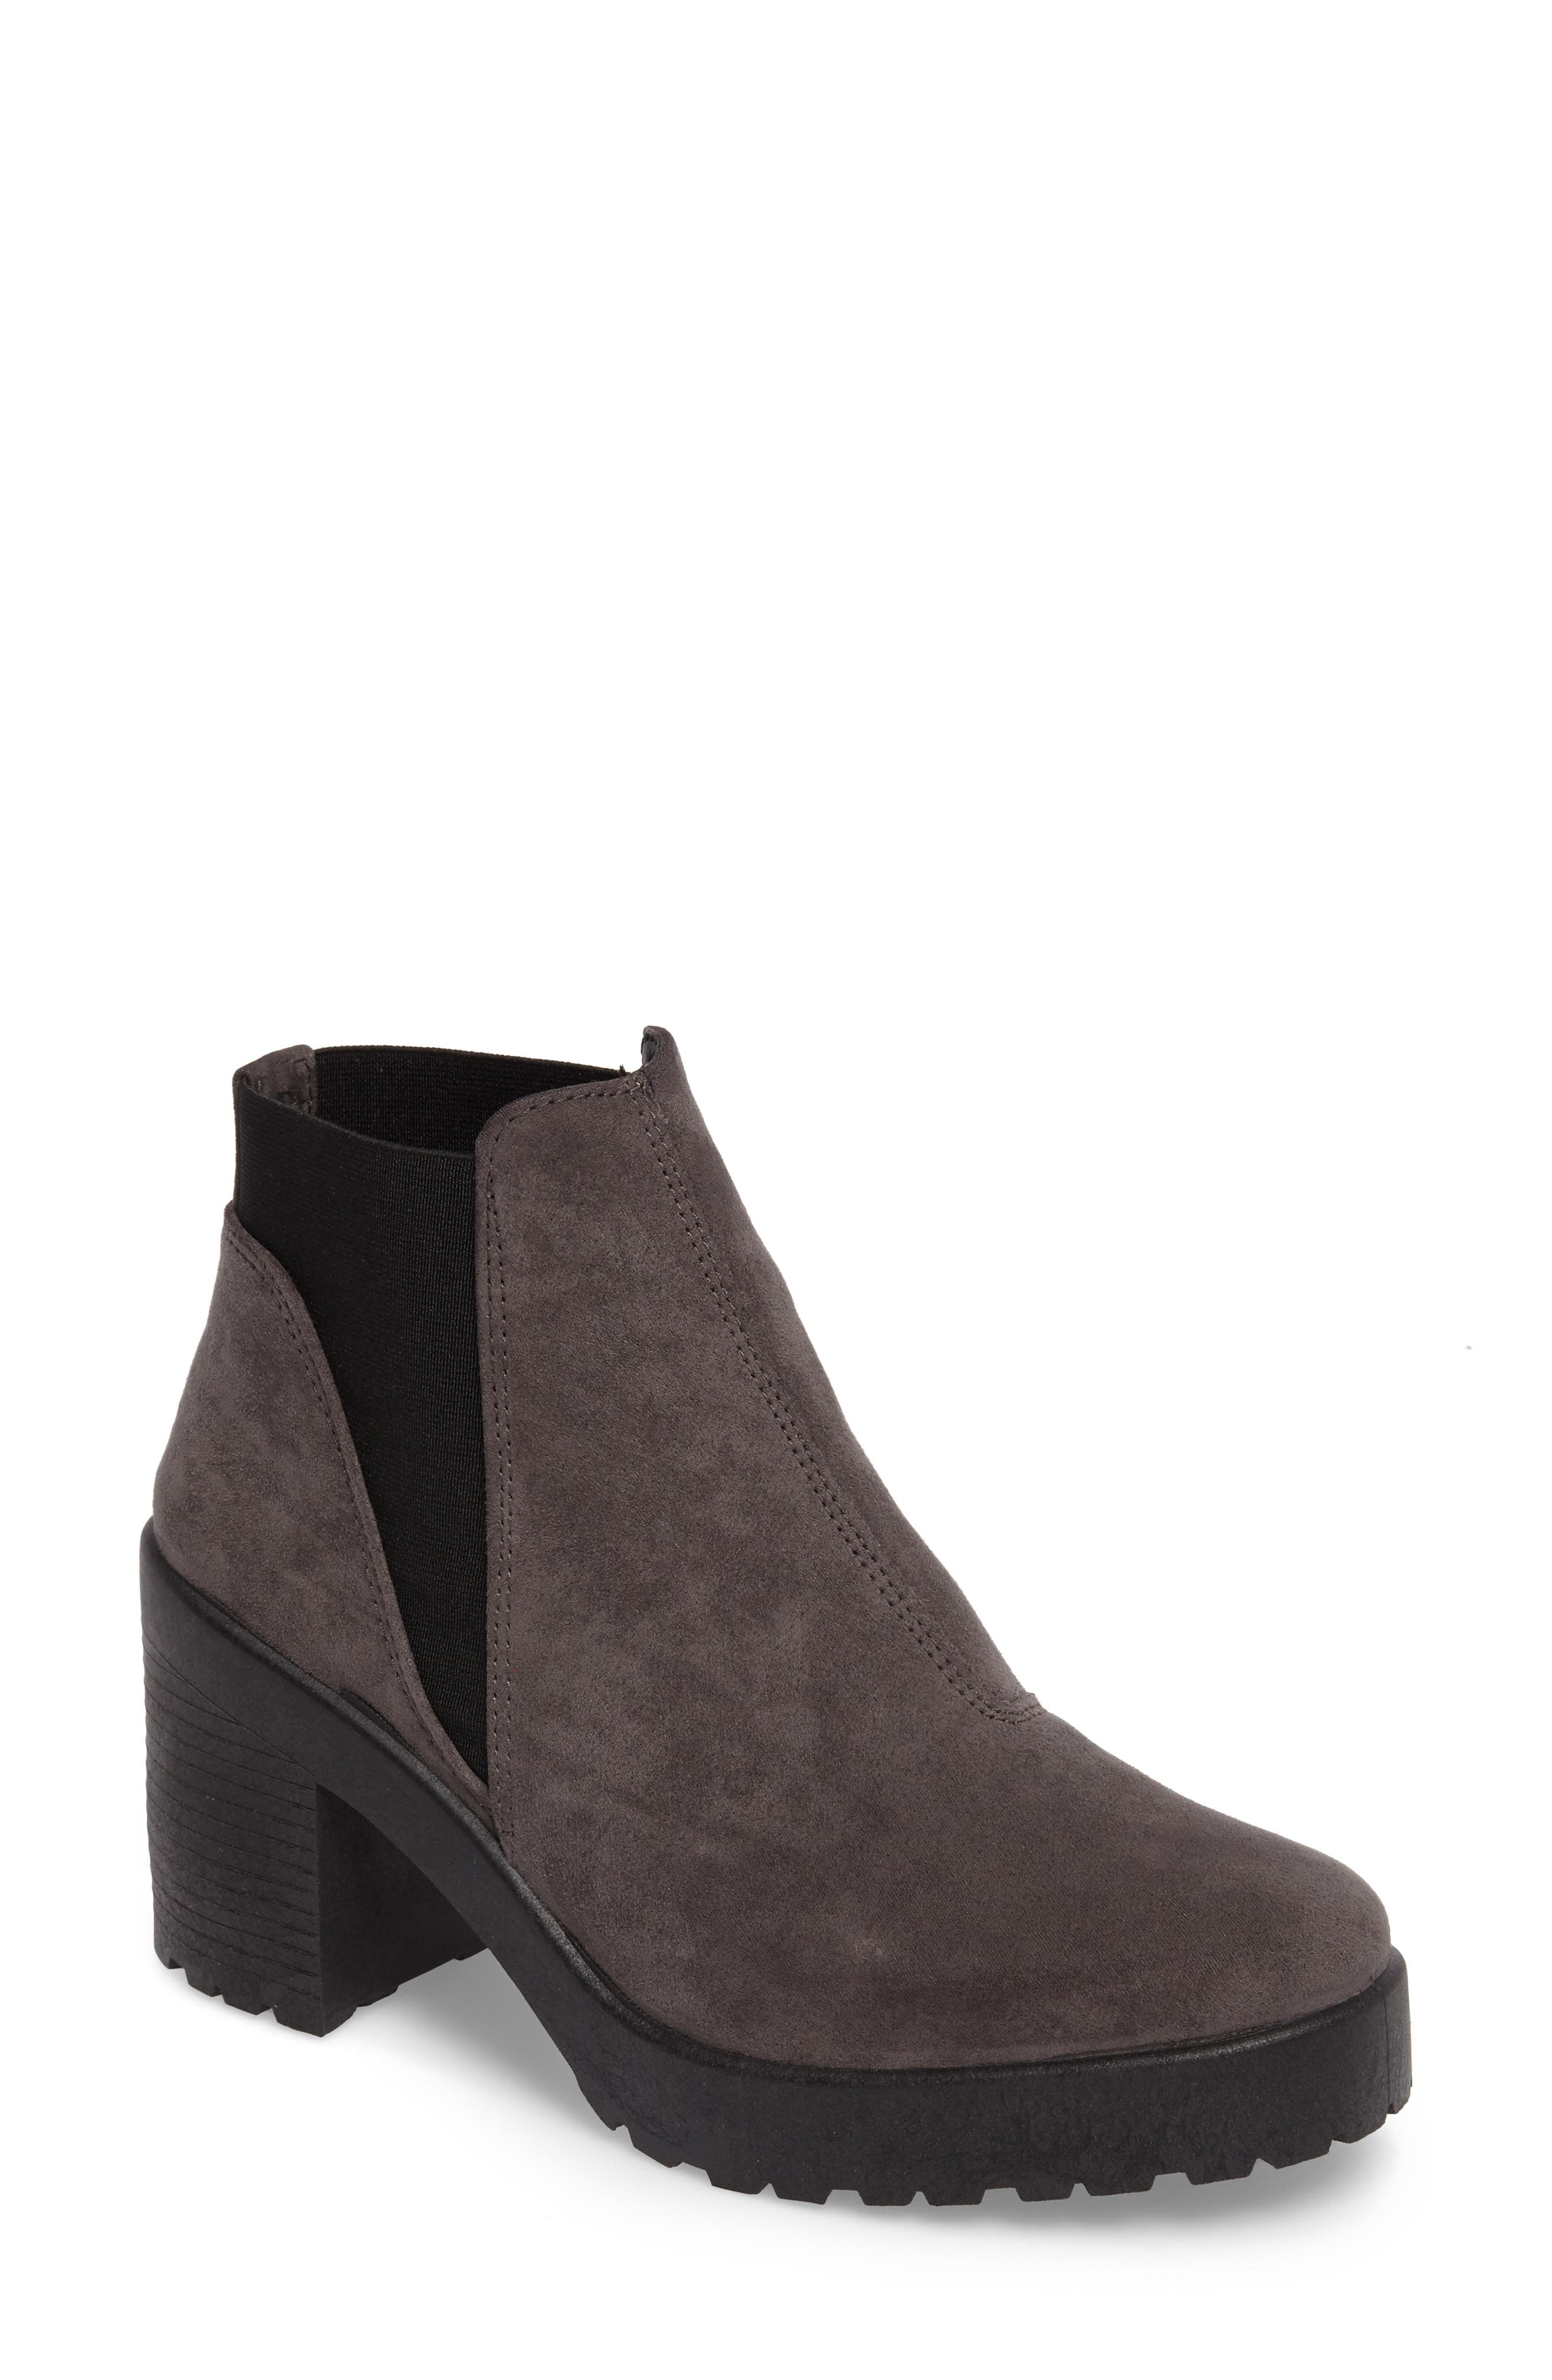 Main Image - Topshop Billie Unit Boot (Women)